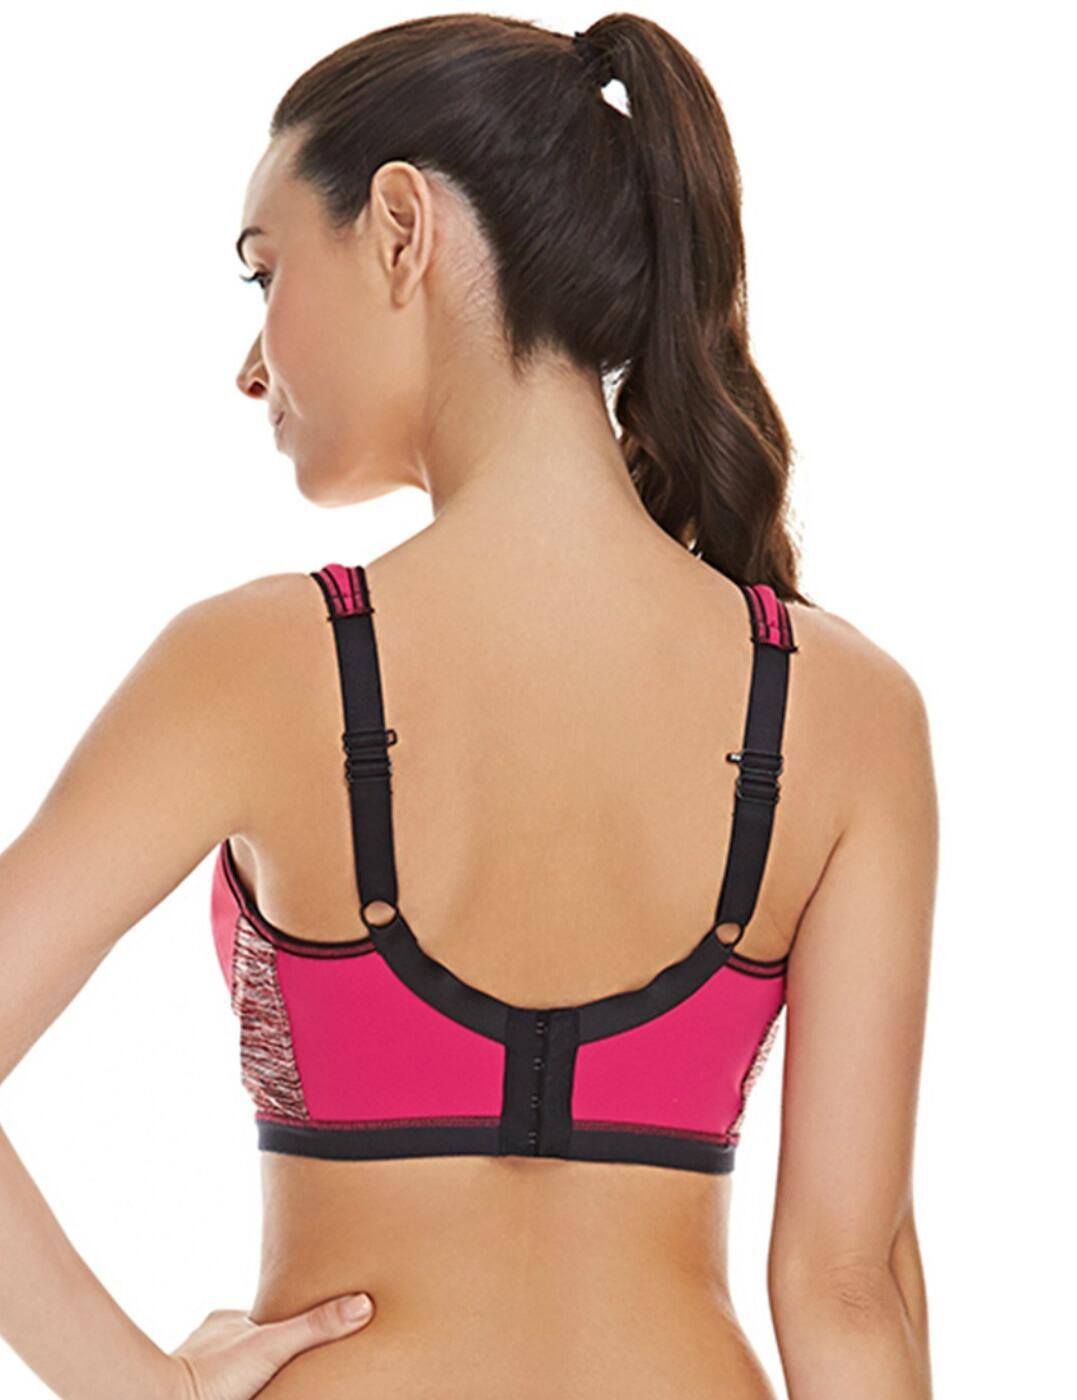 Freya-Active-Epic-Sports-Bra-4004-Underwired-Padded-Moulded-High-Impact-Gym-Bra thumbnail 8